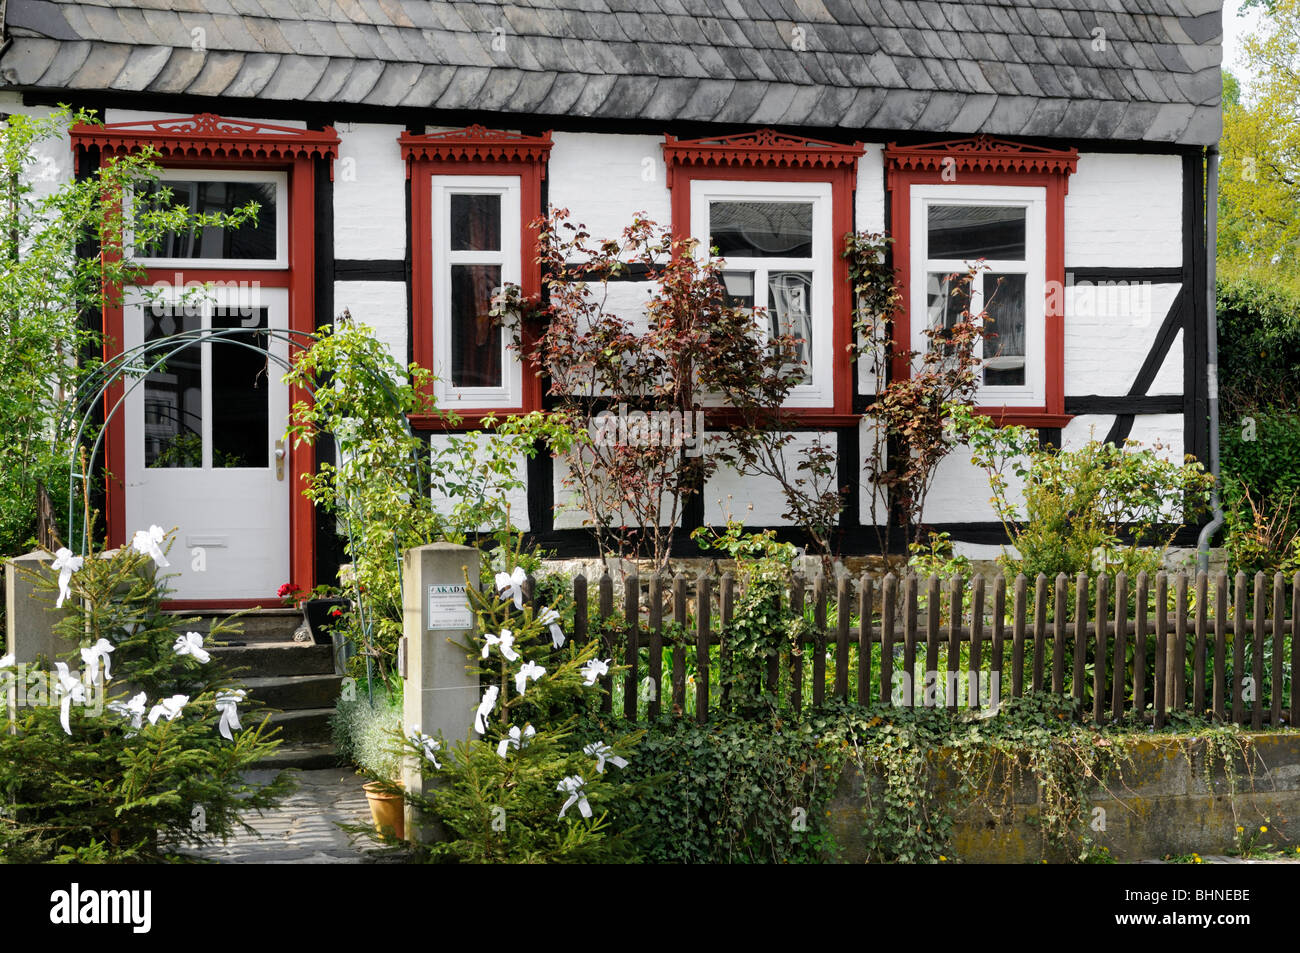 Fachwerkhaus mit Vorgarten in Goslar, Deutschland. - Half-timbered house with front garden in Goslar, Germany. - Stock Image